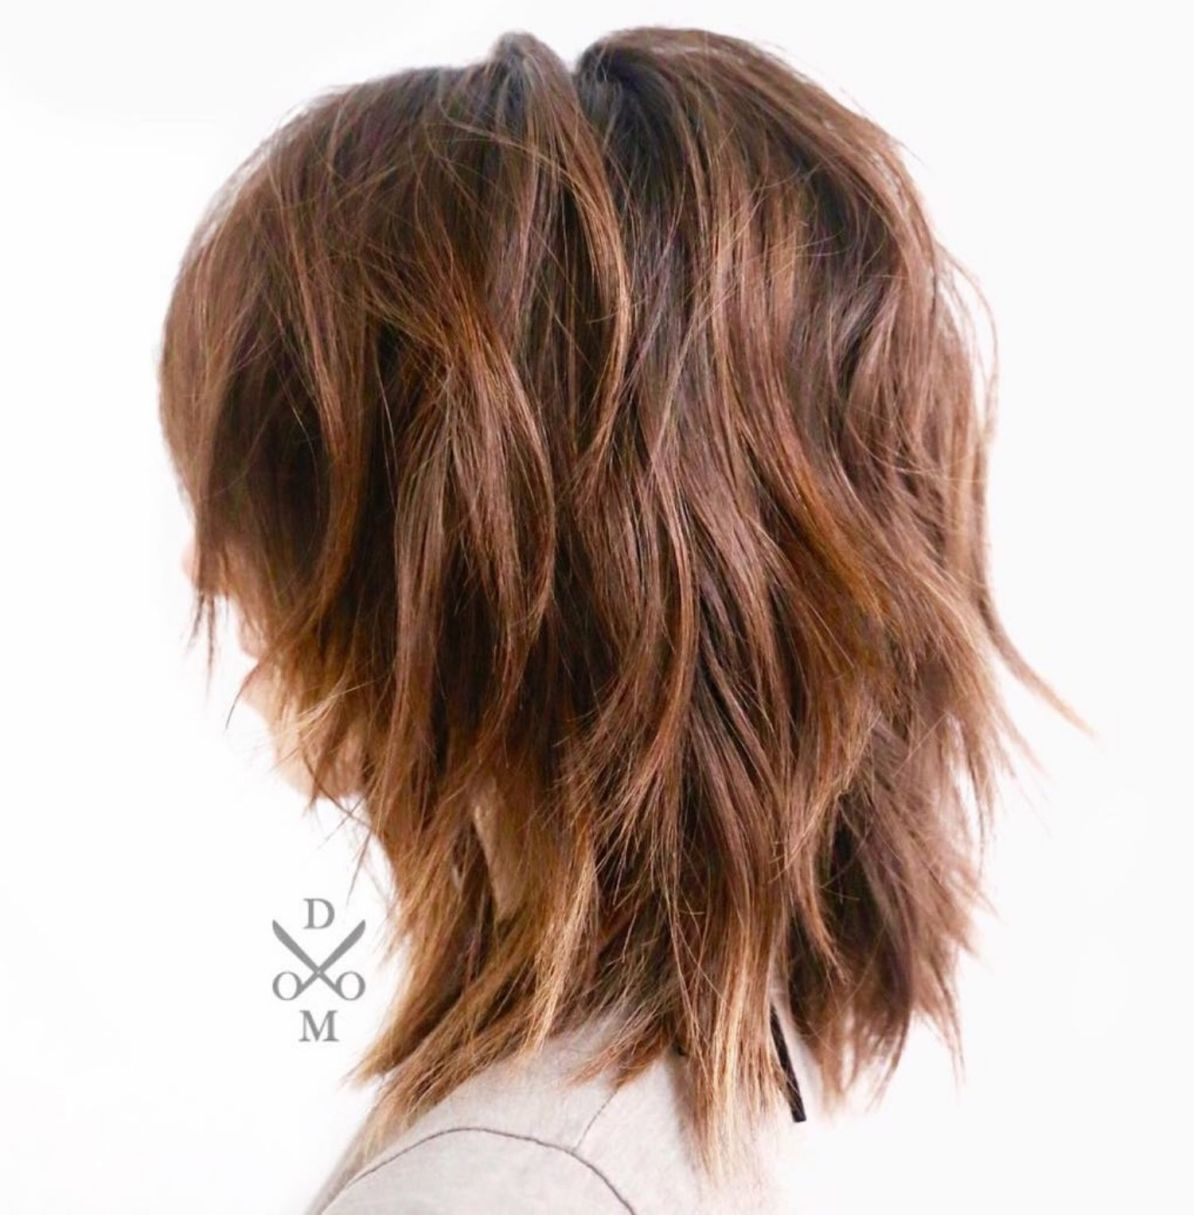 Medium Shaggy Layered Hairstyle For Thick Frizzy Hair Thick Hair Styles Haircut For Thick Hair Medium Length Hair With Layers